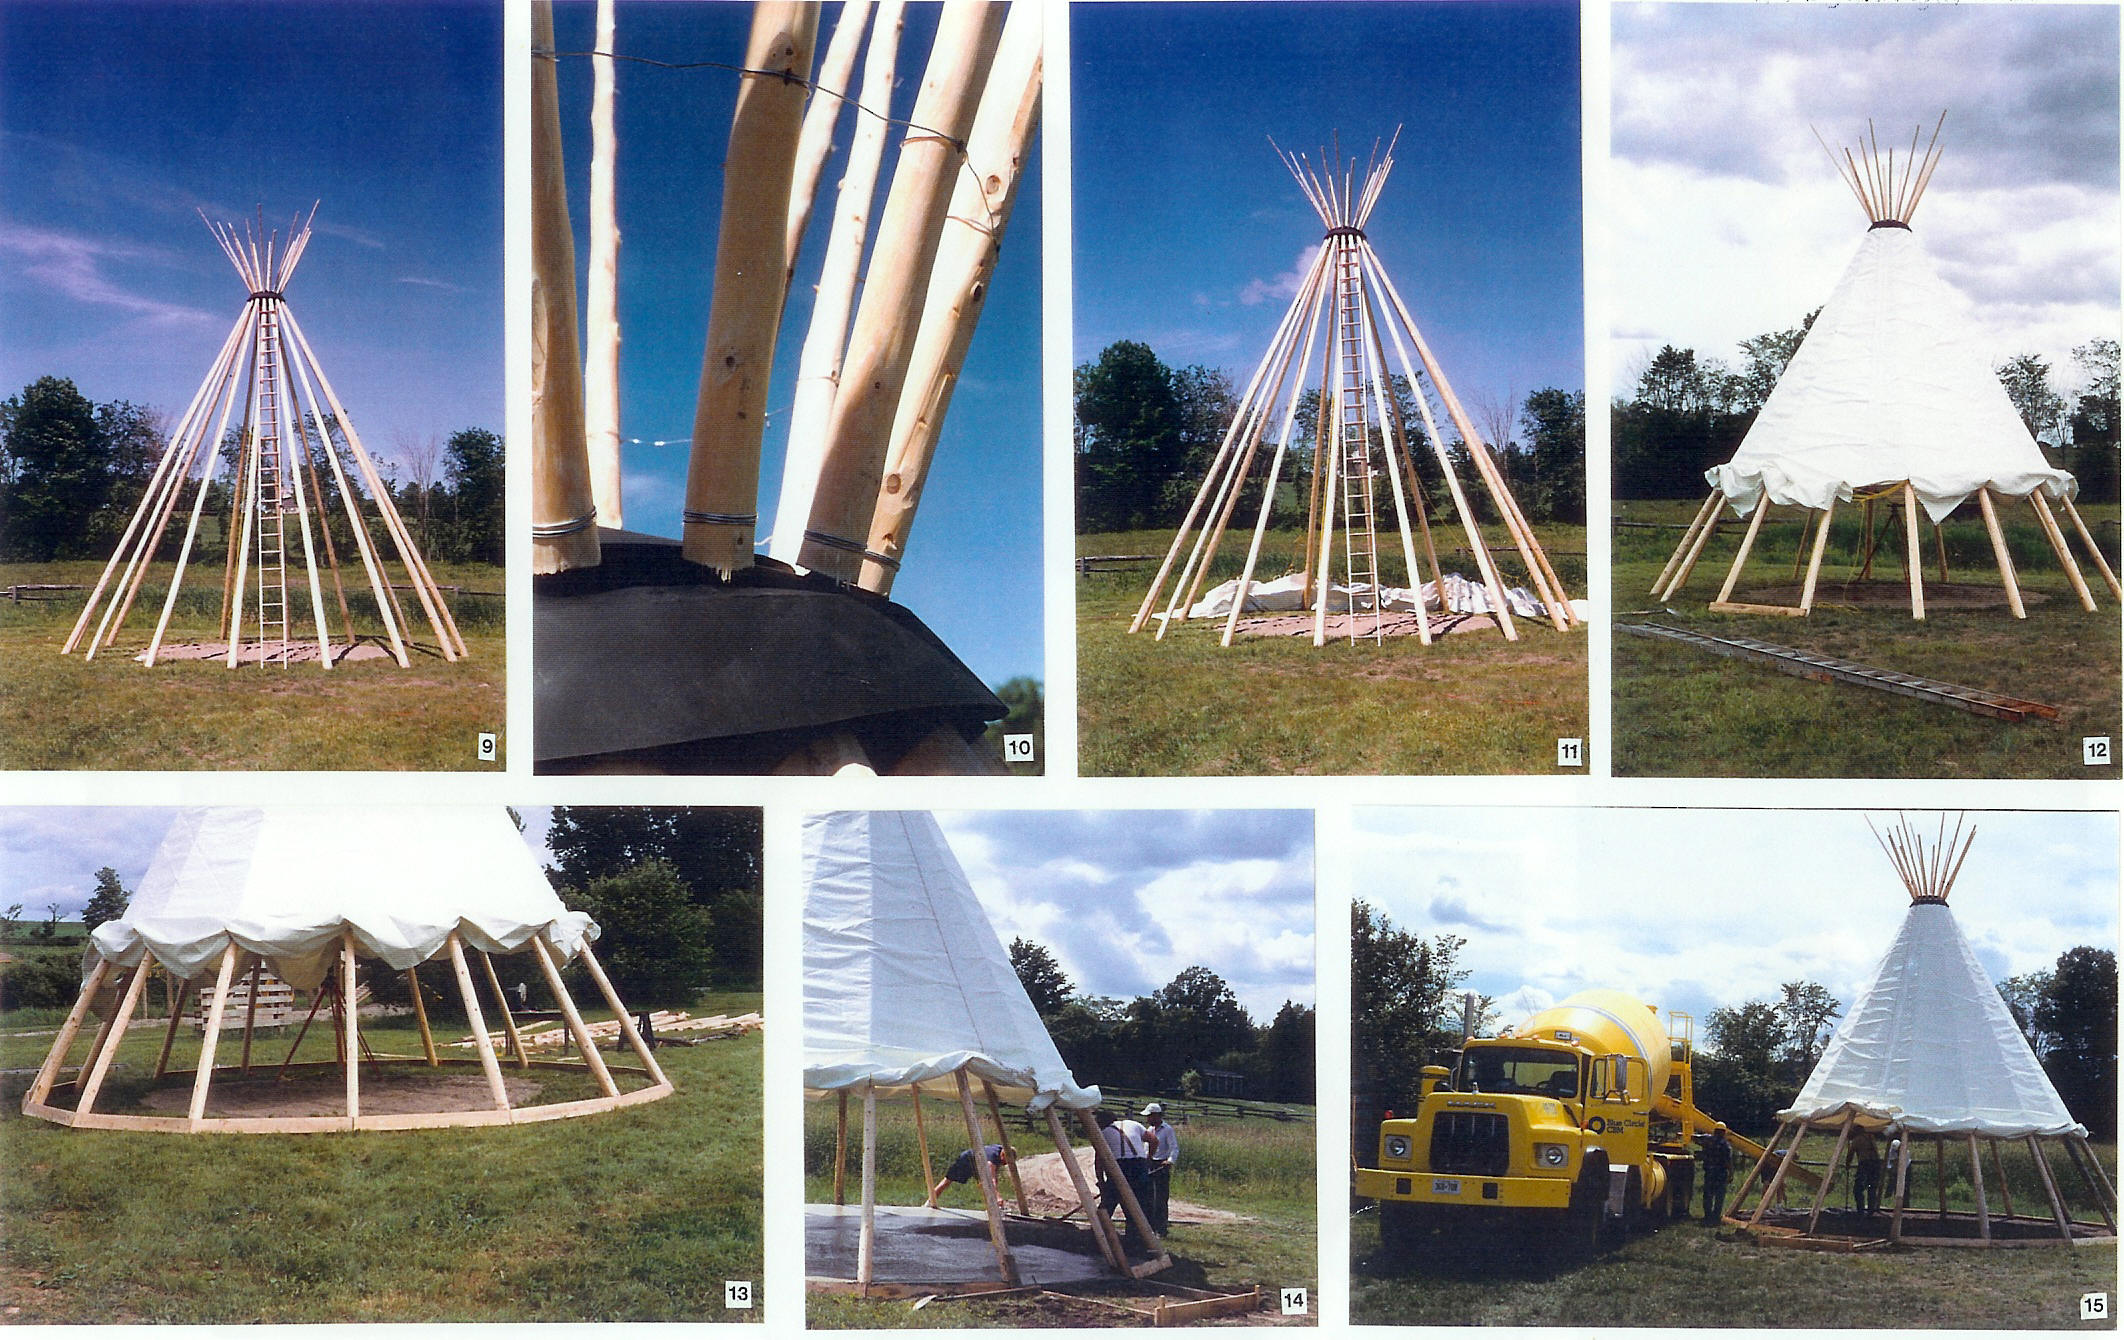 Pictures of the tipi construction process click on picture to enlarge